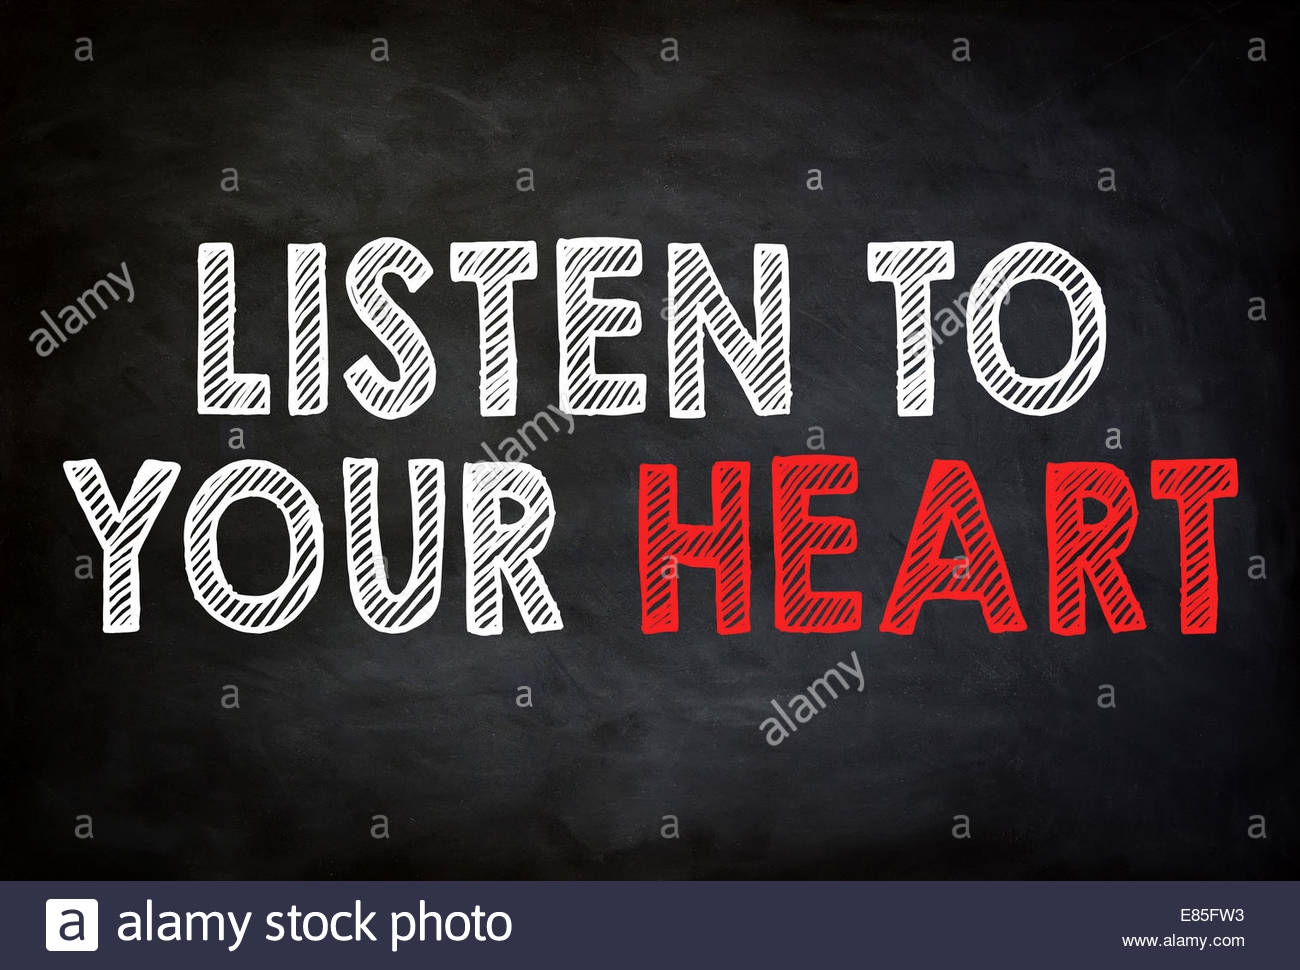 LISTEN TO YOUR HEART- chalkboard concept - Stock Image